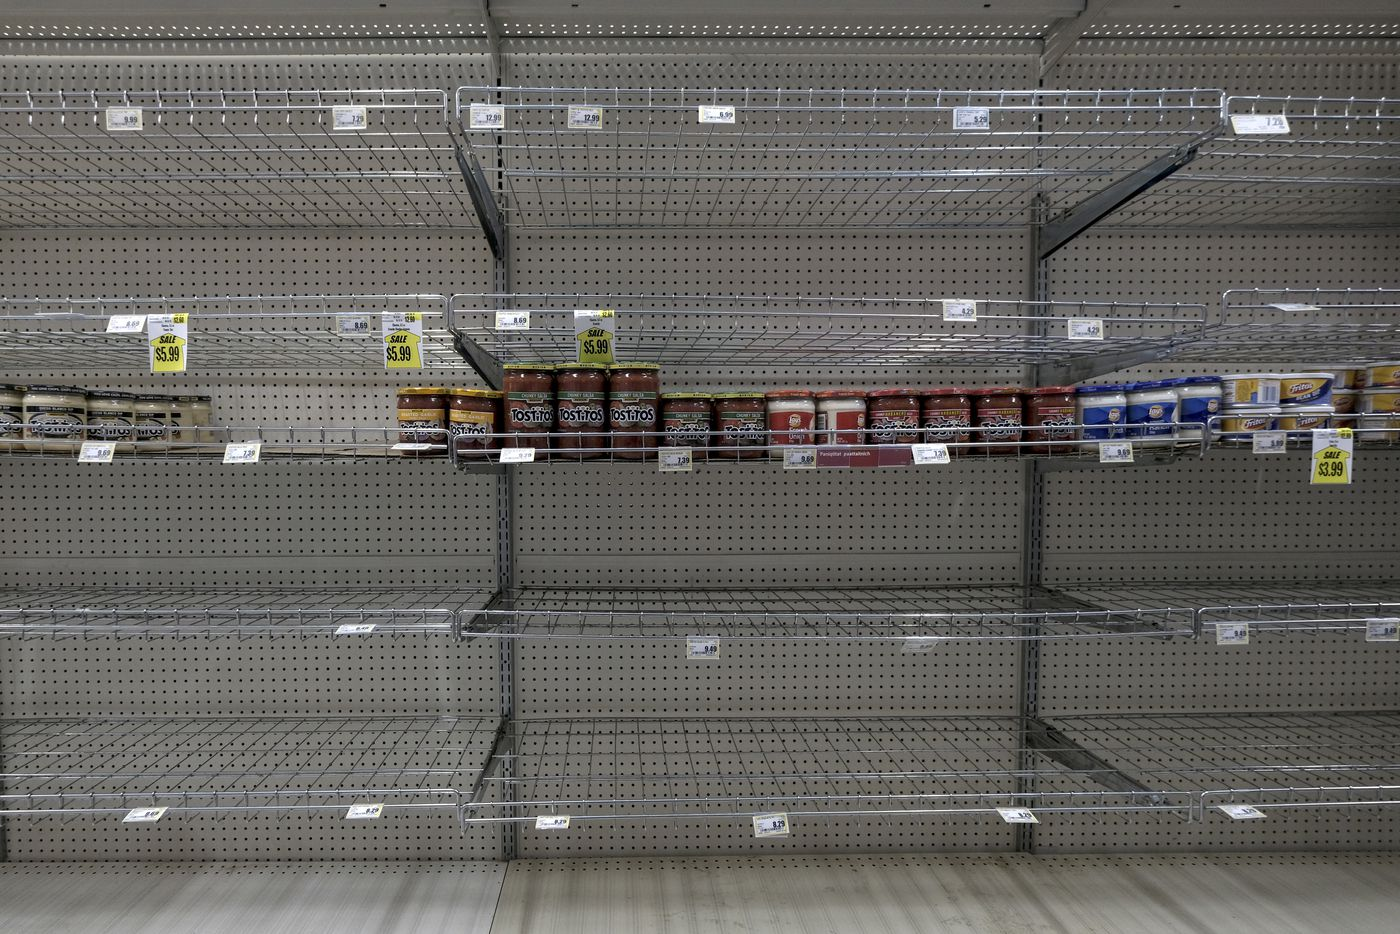 Empty shelves at the grocery store in Nuiqsut. Groceries are expensive in remote Alaskan villages and supplies take time to ship. The chips that lined these shelves have been out of stock for more than a month. (Washington Post photo by Bonnie Jo Mount)